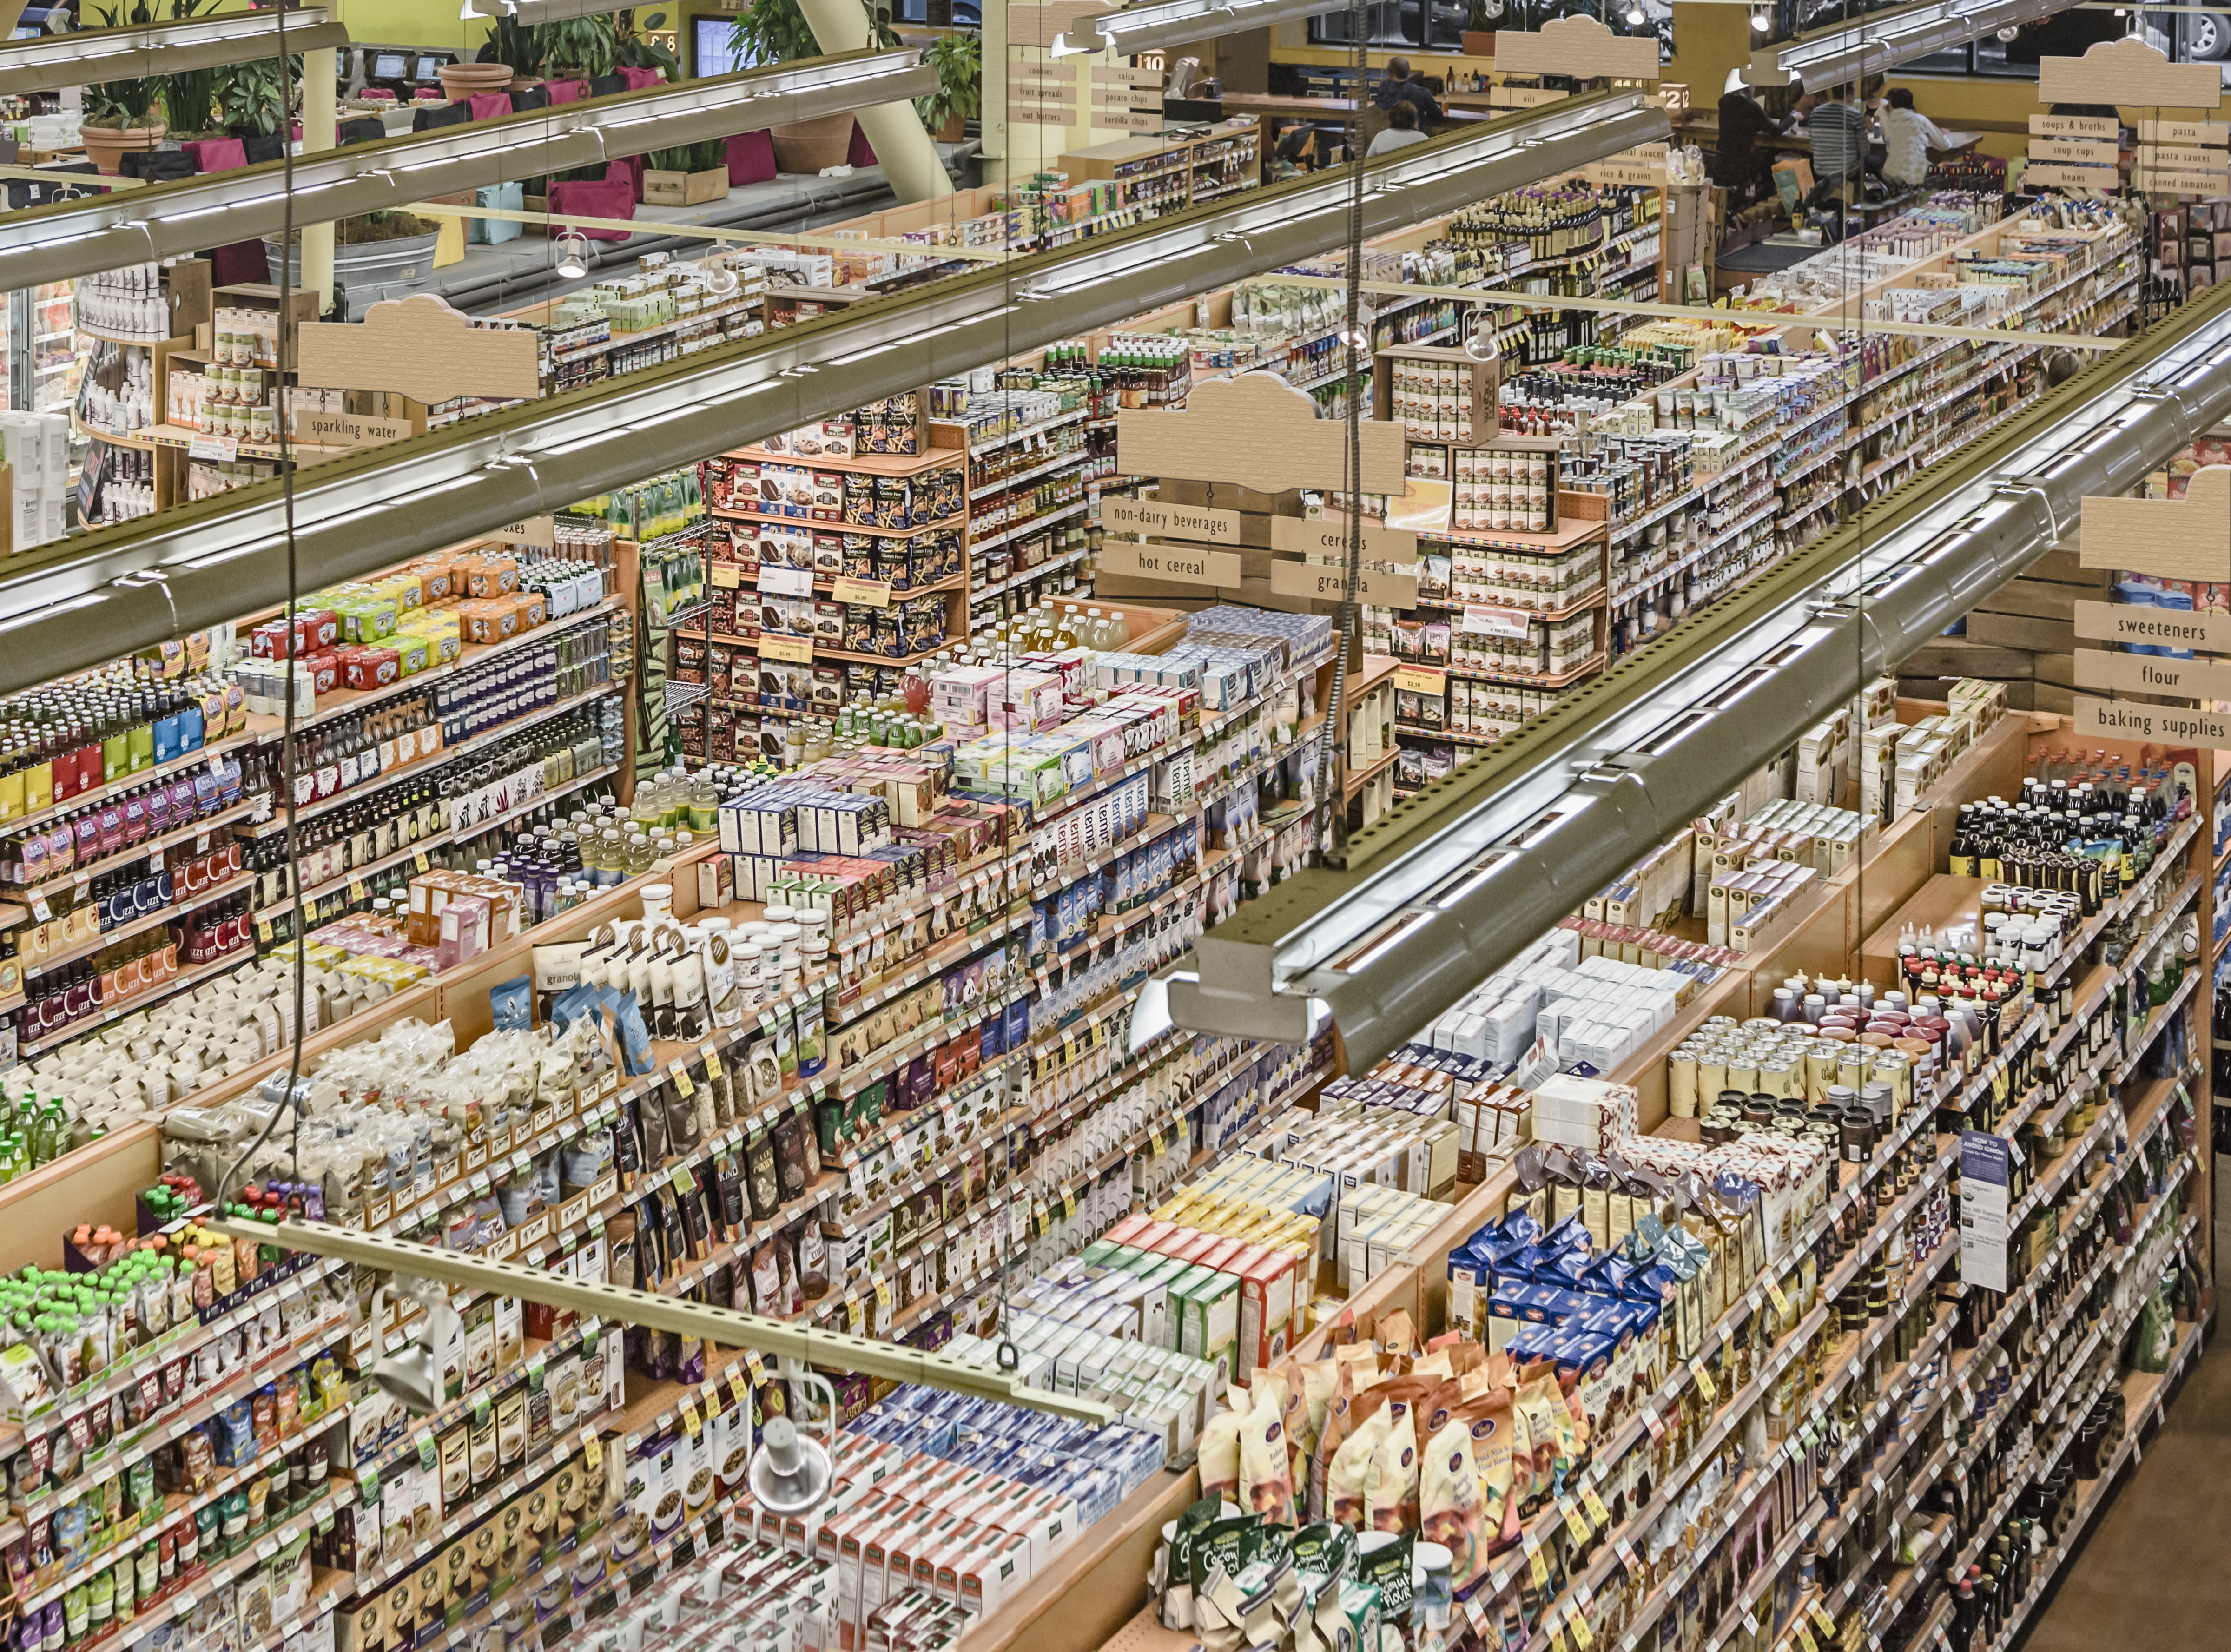 Aisles in a well-stocked grocery store, shot from above.